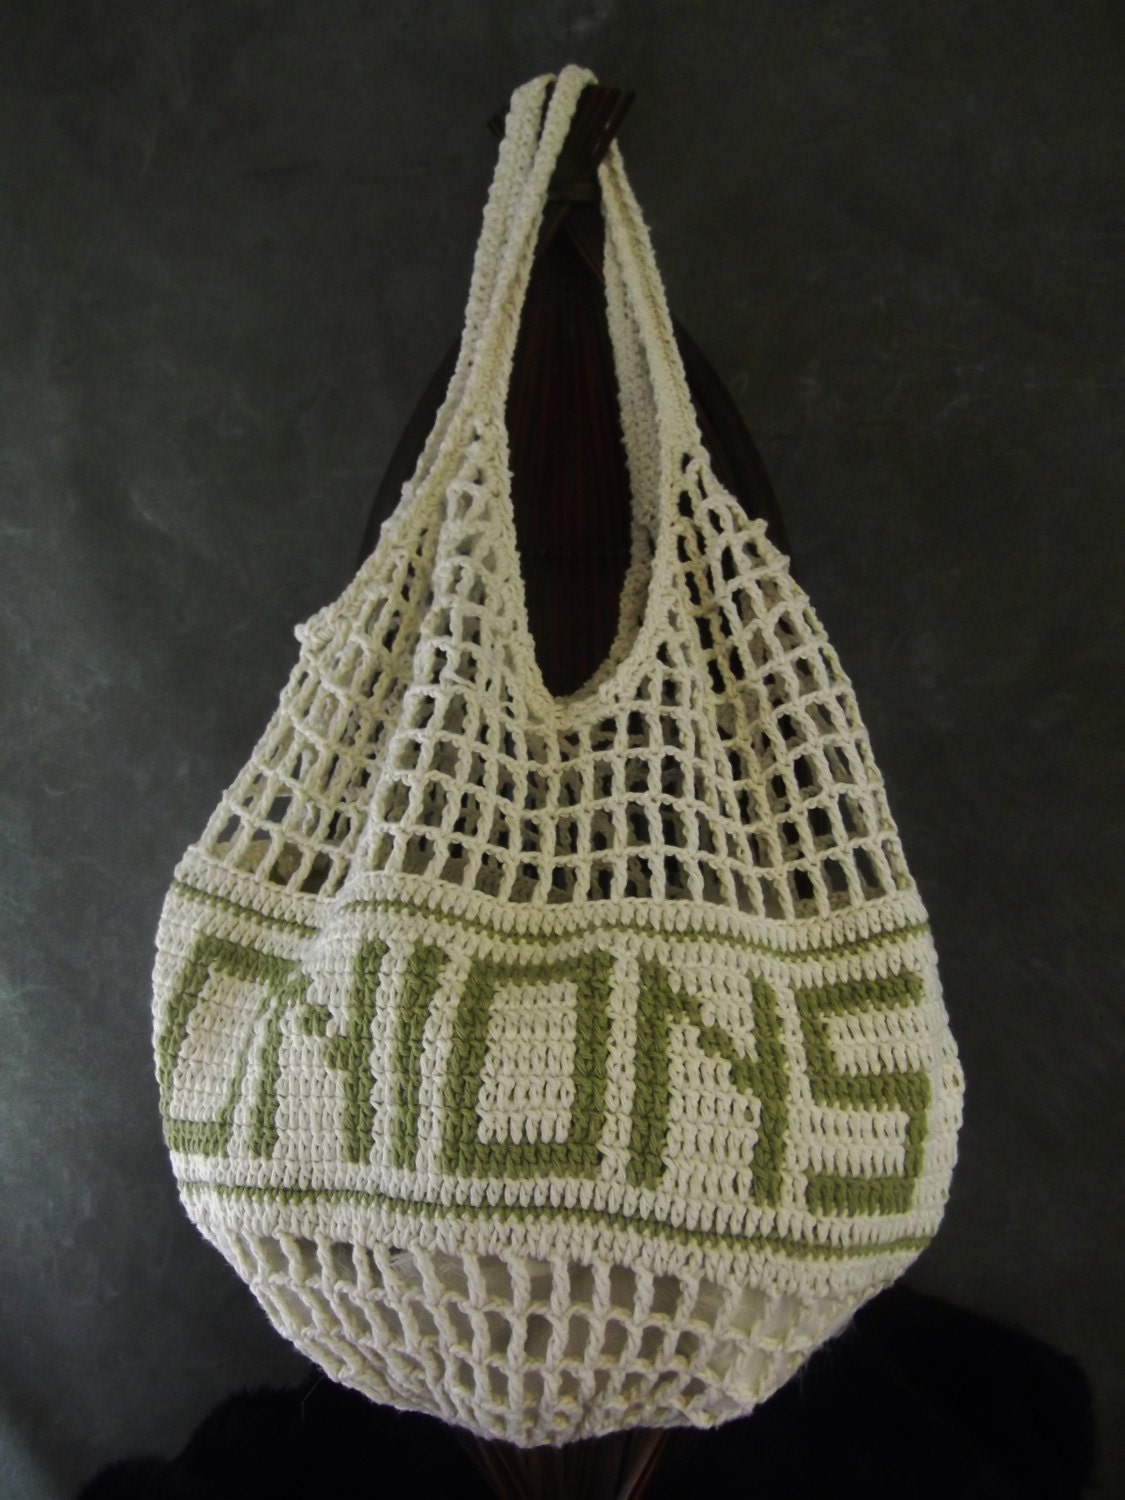 Crochet Vegetable Bag Pattern : Crochet Onion Keeper Produce Storage Bag Kitchen Accessory